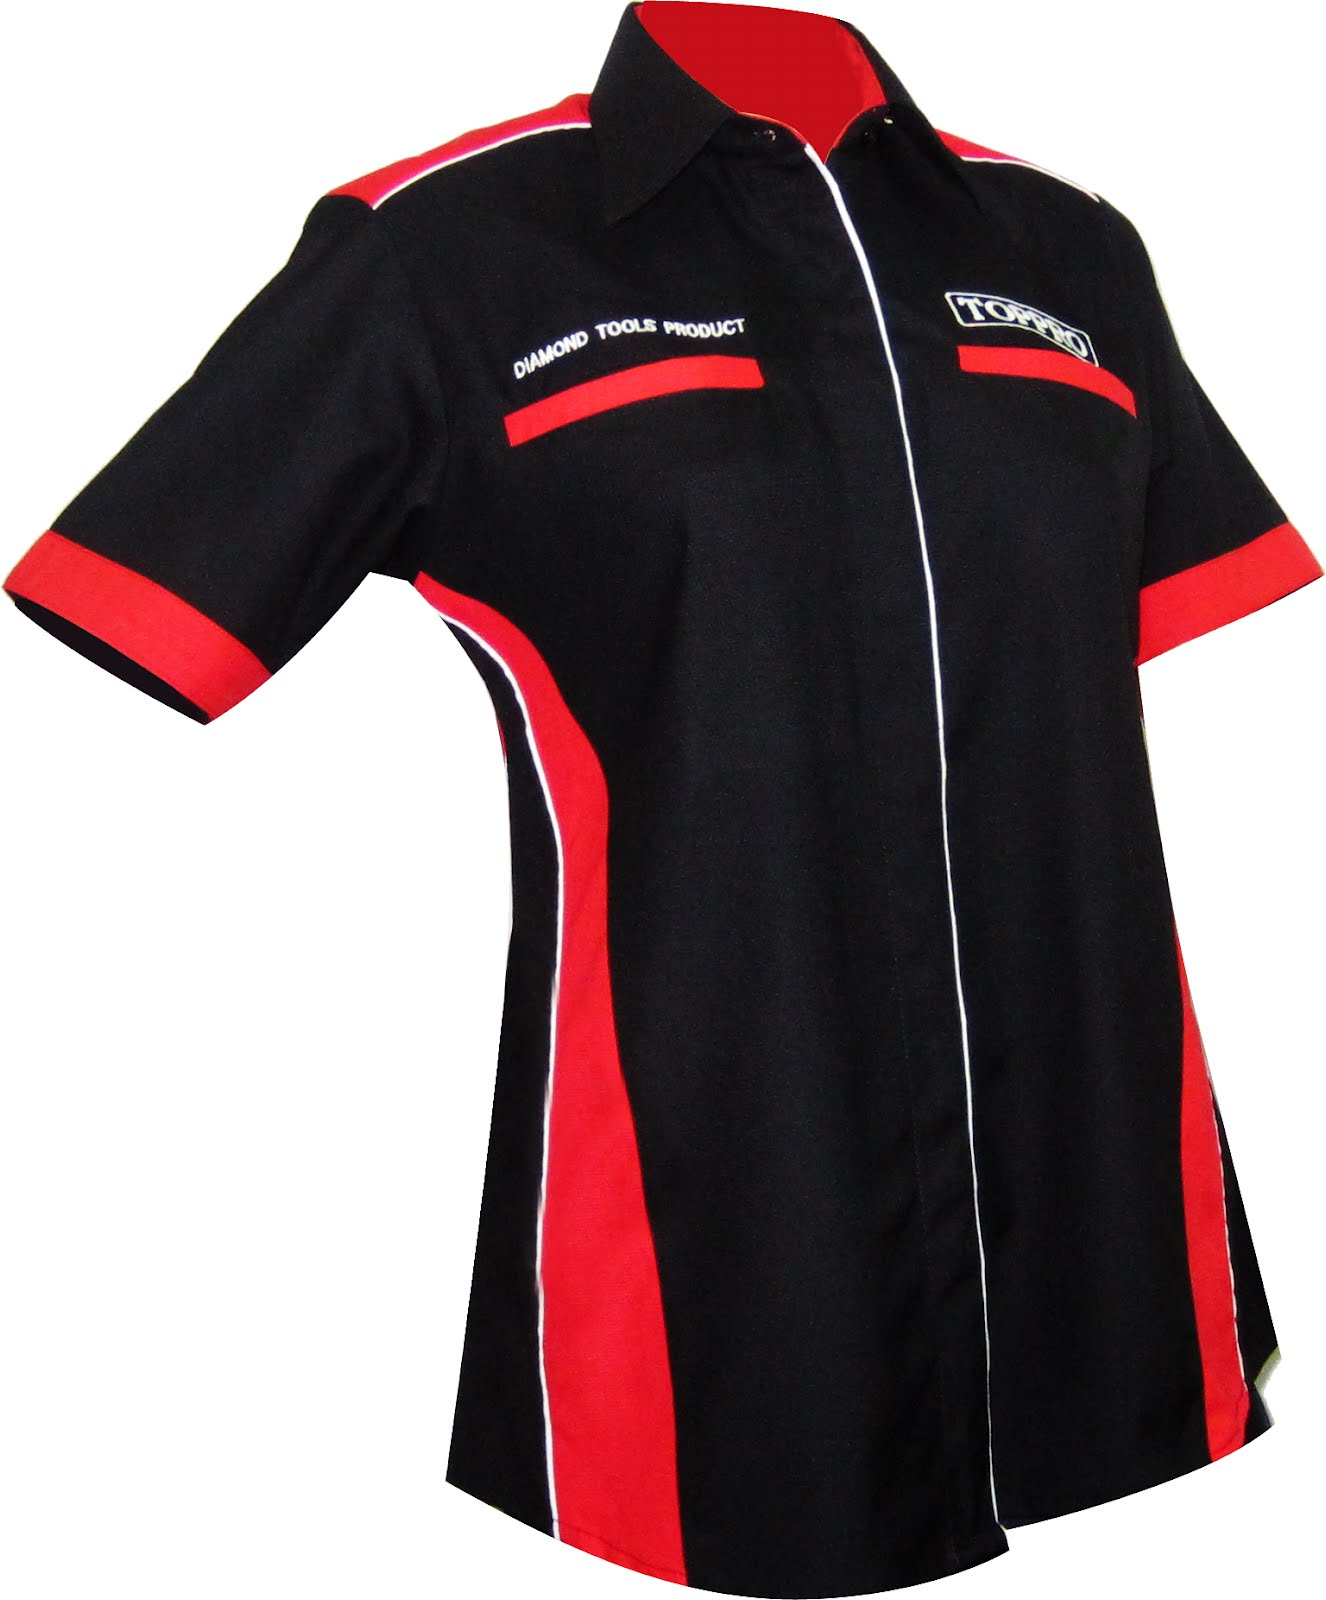 Corporate shirt customade cs 03 red black corporate for Corporate t shirt designs